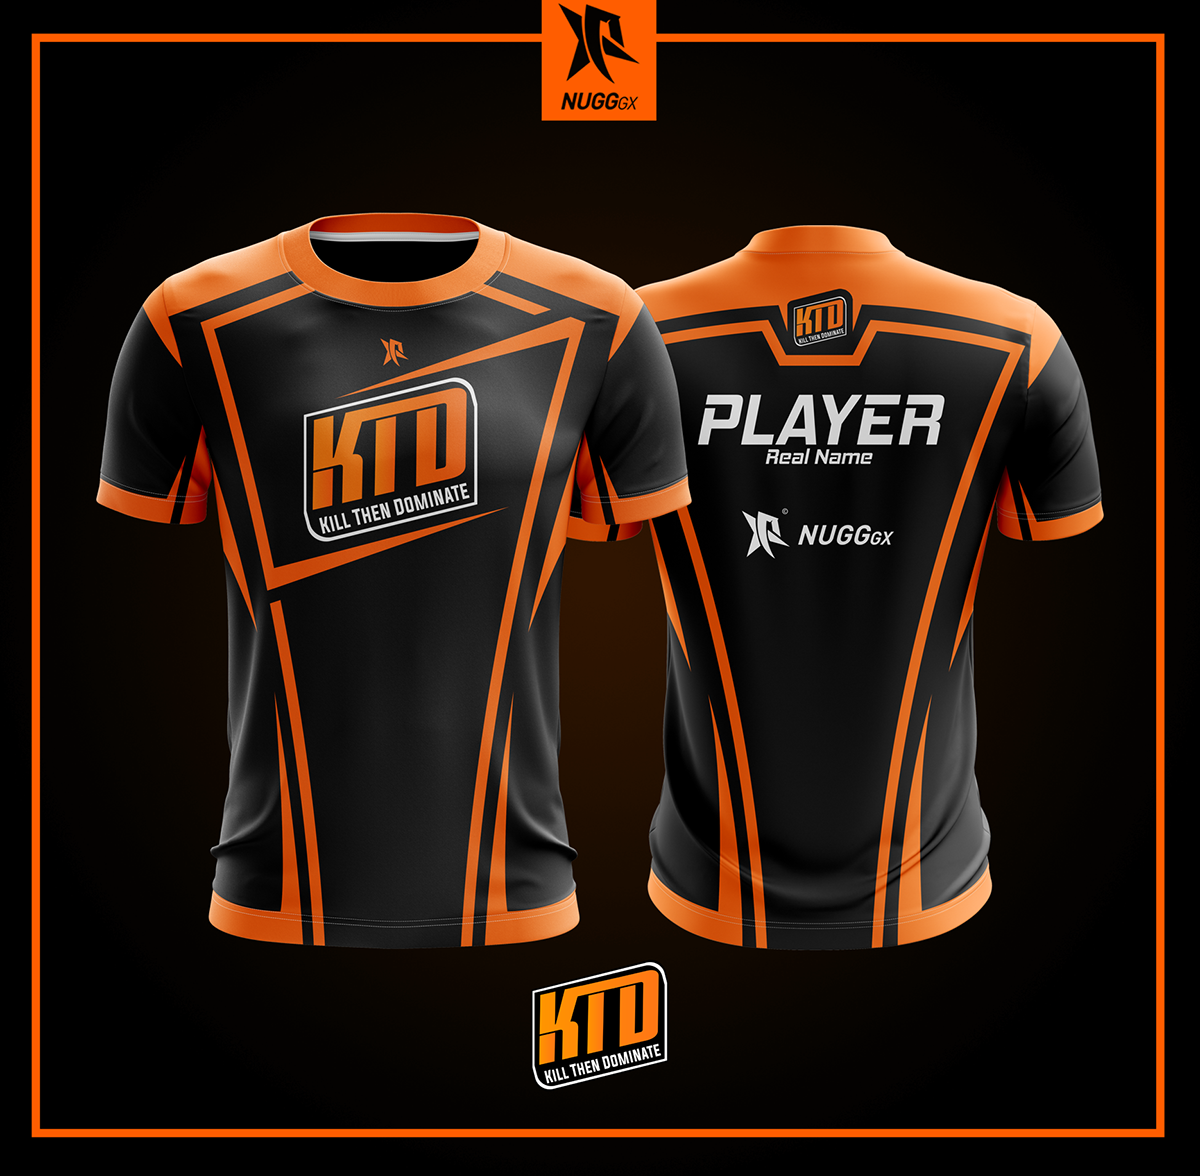 Download 1/4 2018 Gaming Jerseys Catalogue on Behance in 2020 ...